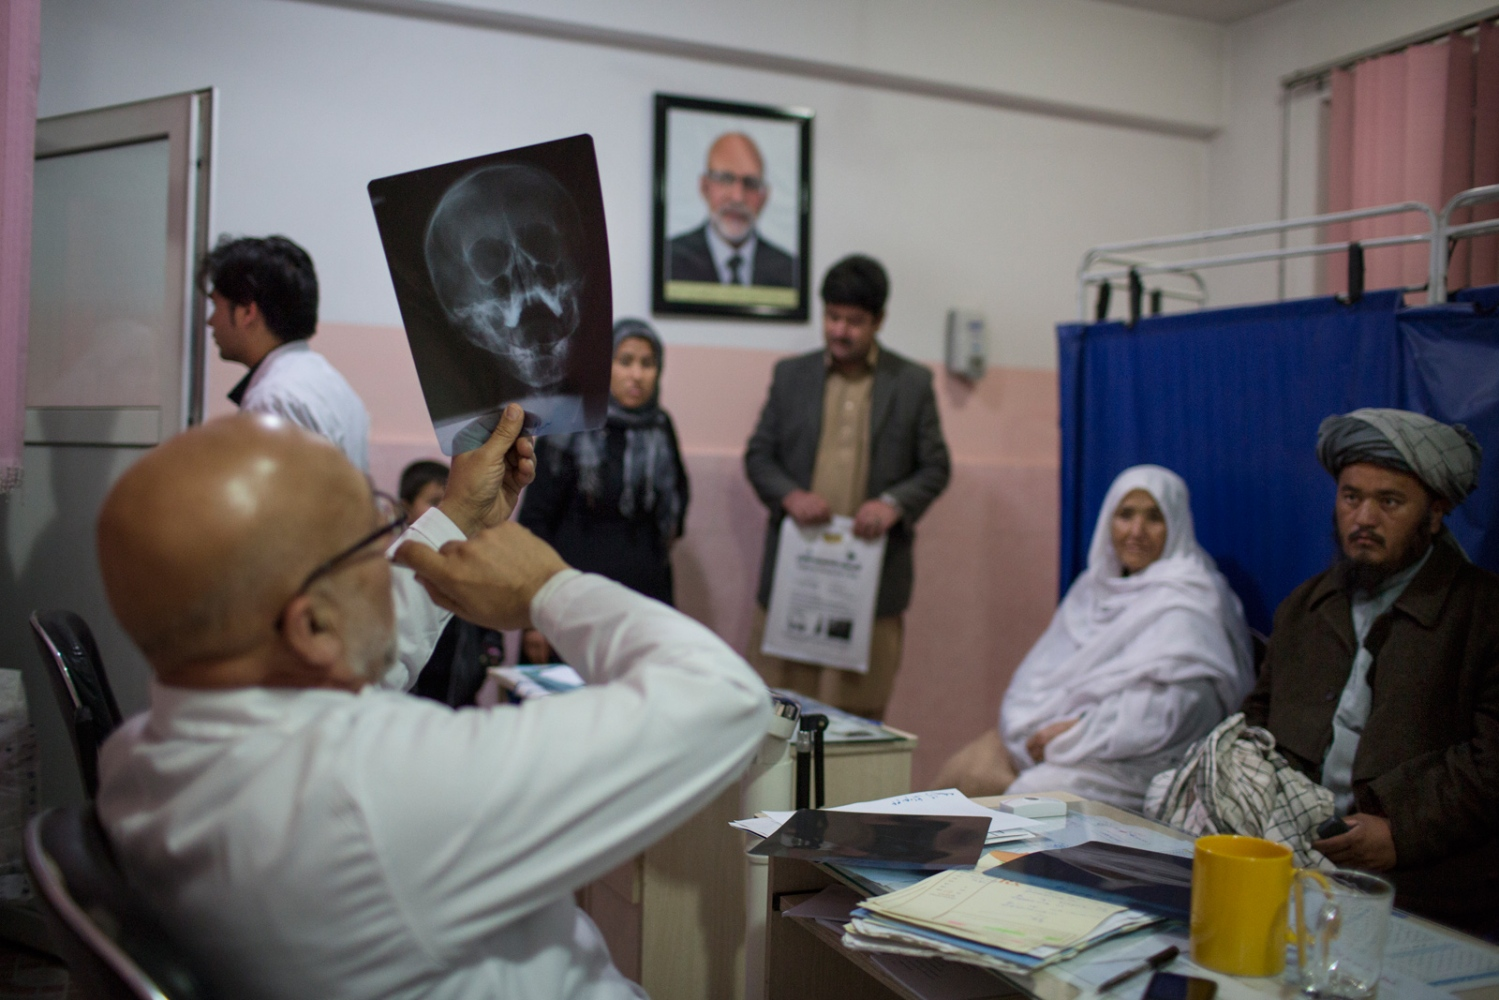 With a continuous stream of outpatients to attend to there is little or no privacy. Patients and their relatives are called into the consultation room where diagnosis and treatment are discussed in the presence of others waiting their turn. Doctors use basic tests and X-ray to eliminate other potential causes of health problems. Male patients have their vital signs checked behind the screen. Mazar e Sharif, Afghanistan. December 2015. Photo: Magda Rakita/BAAG